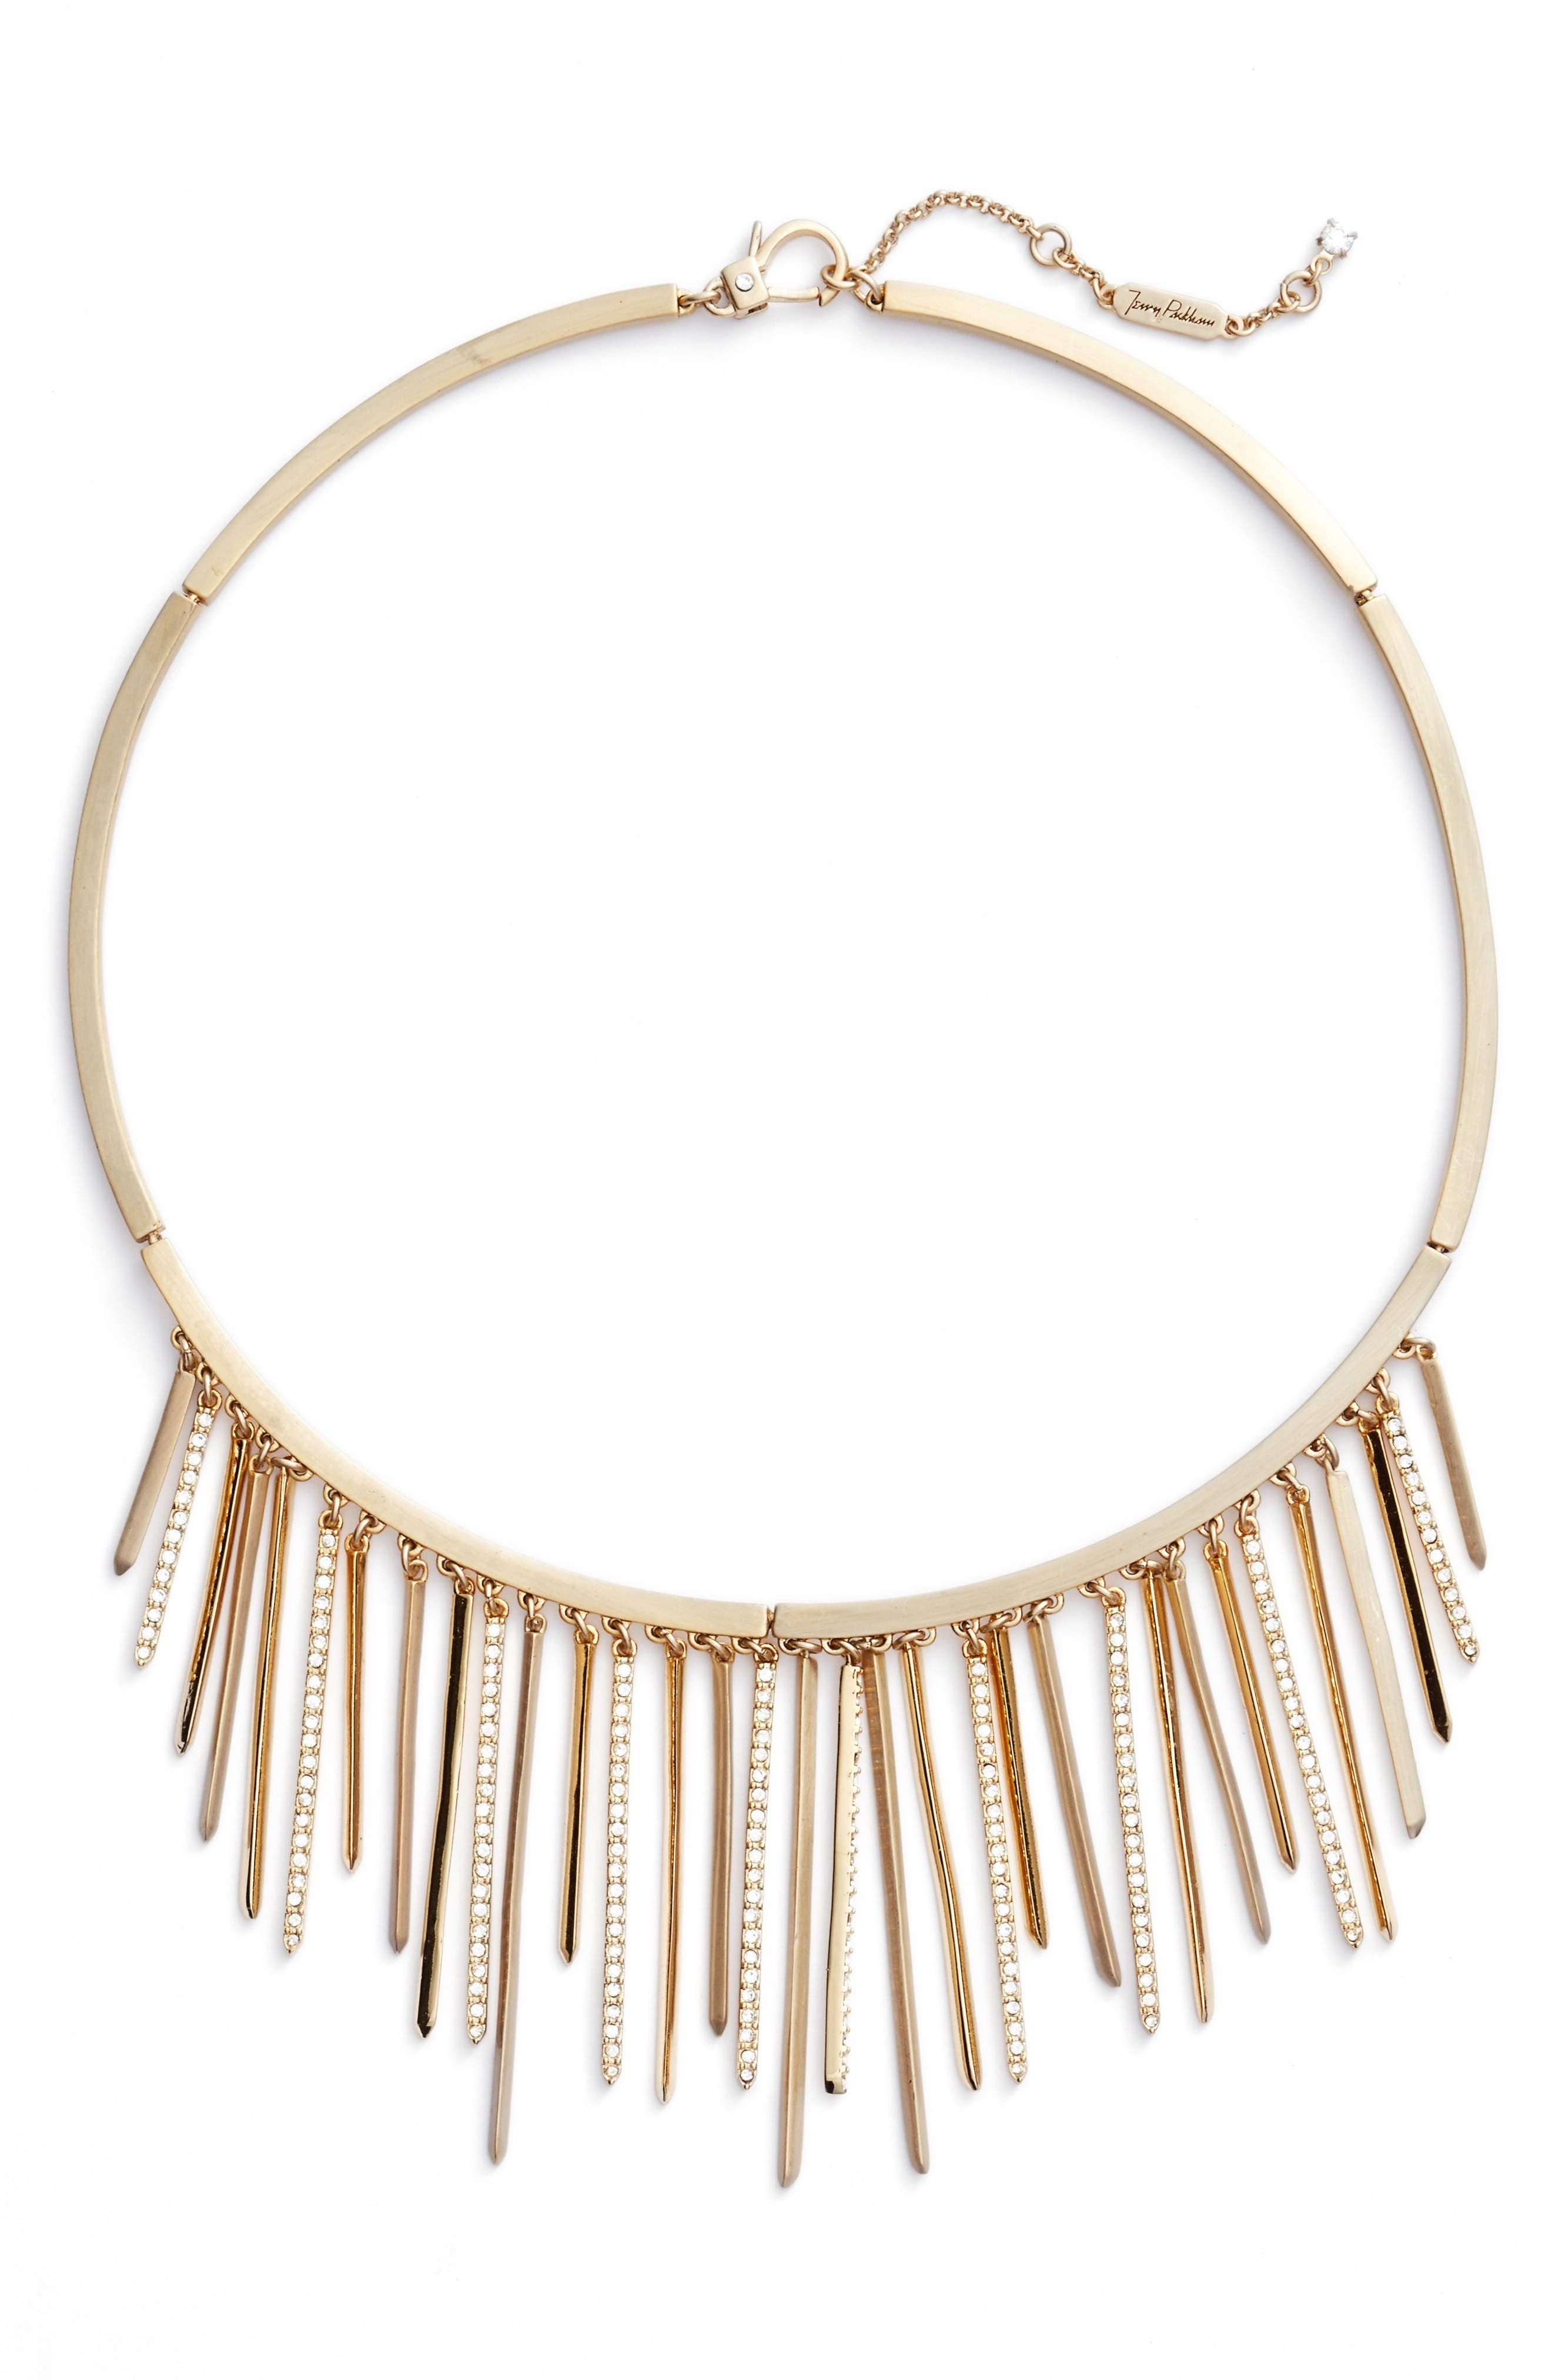 Jenny Packham Fringe Frontal Necklace